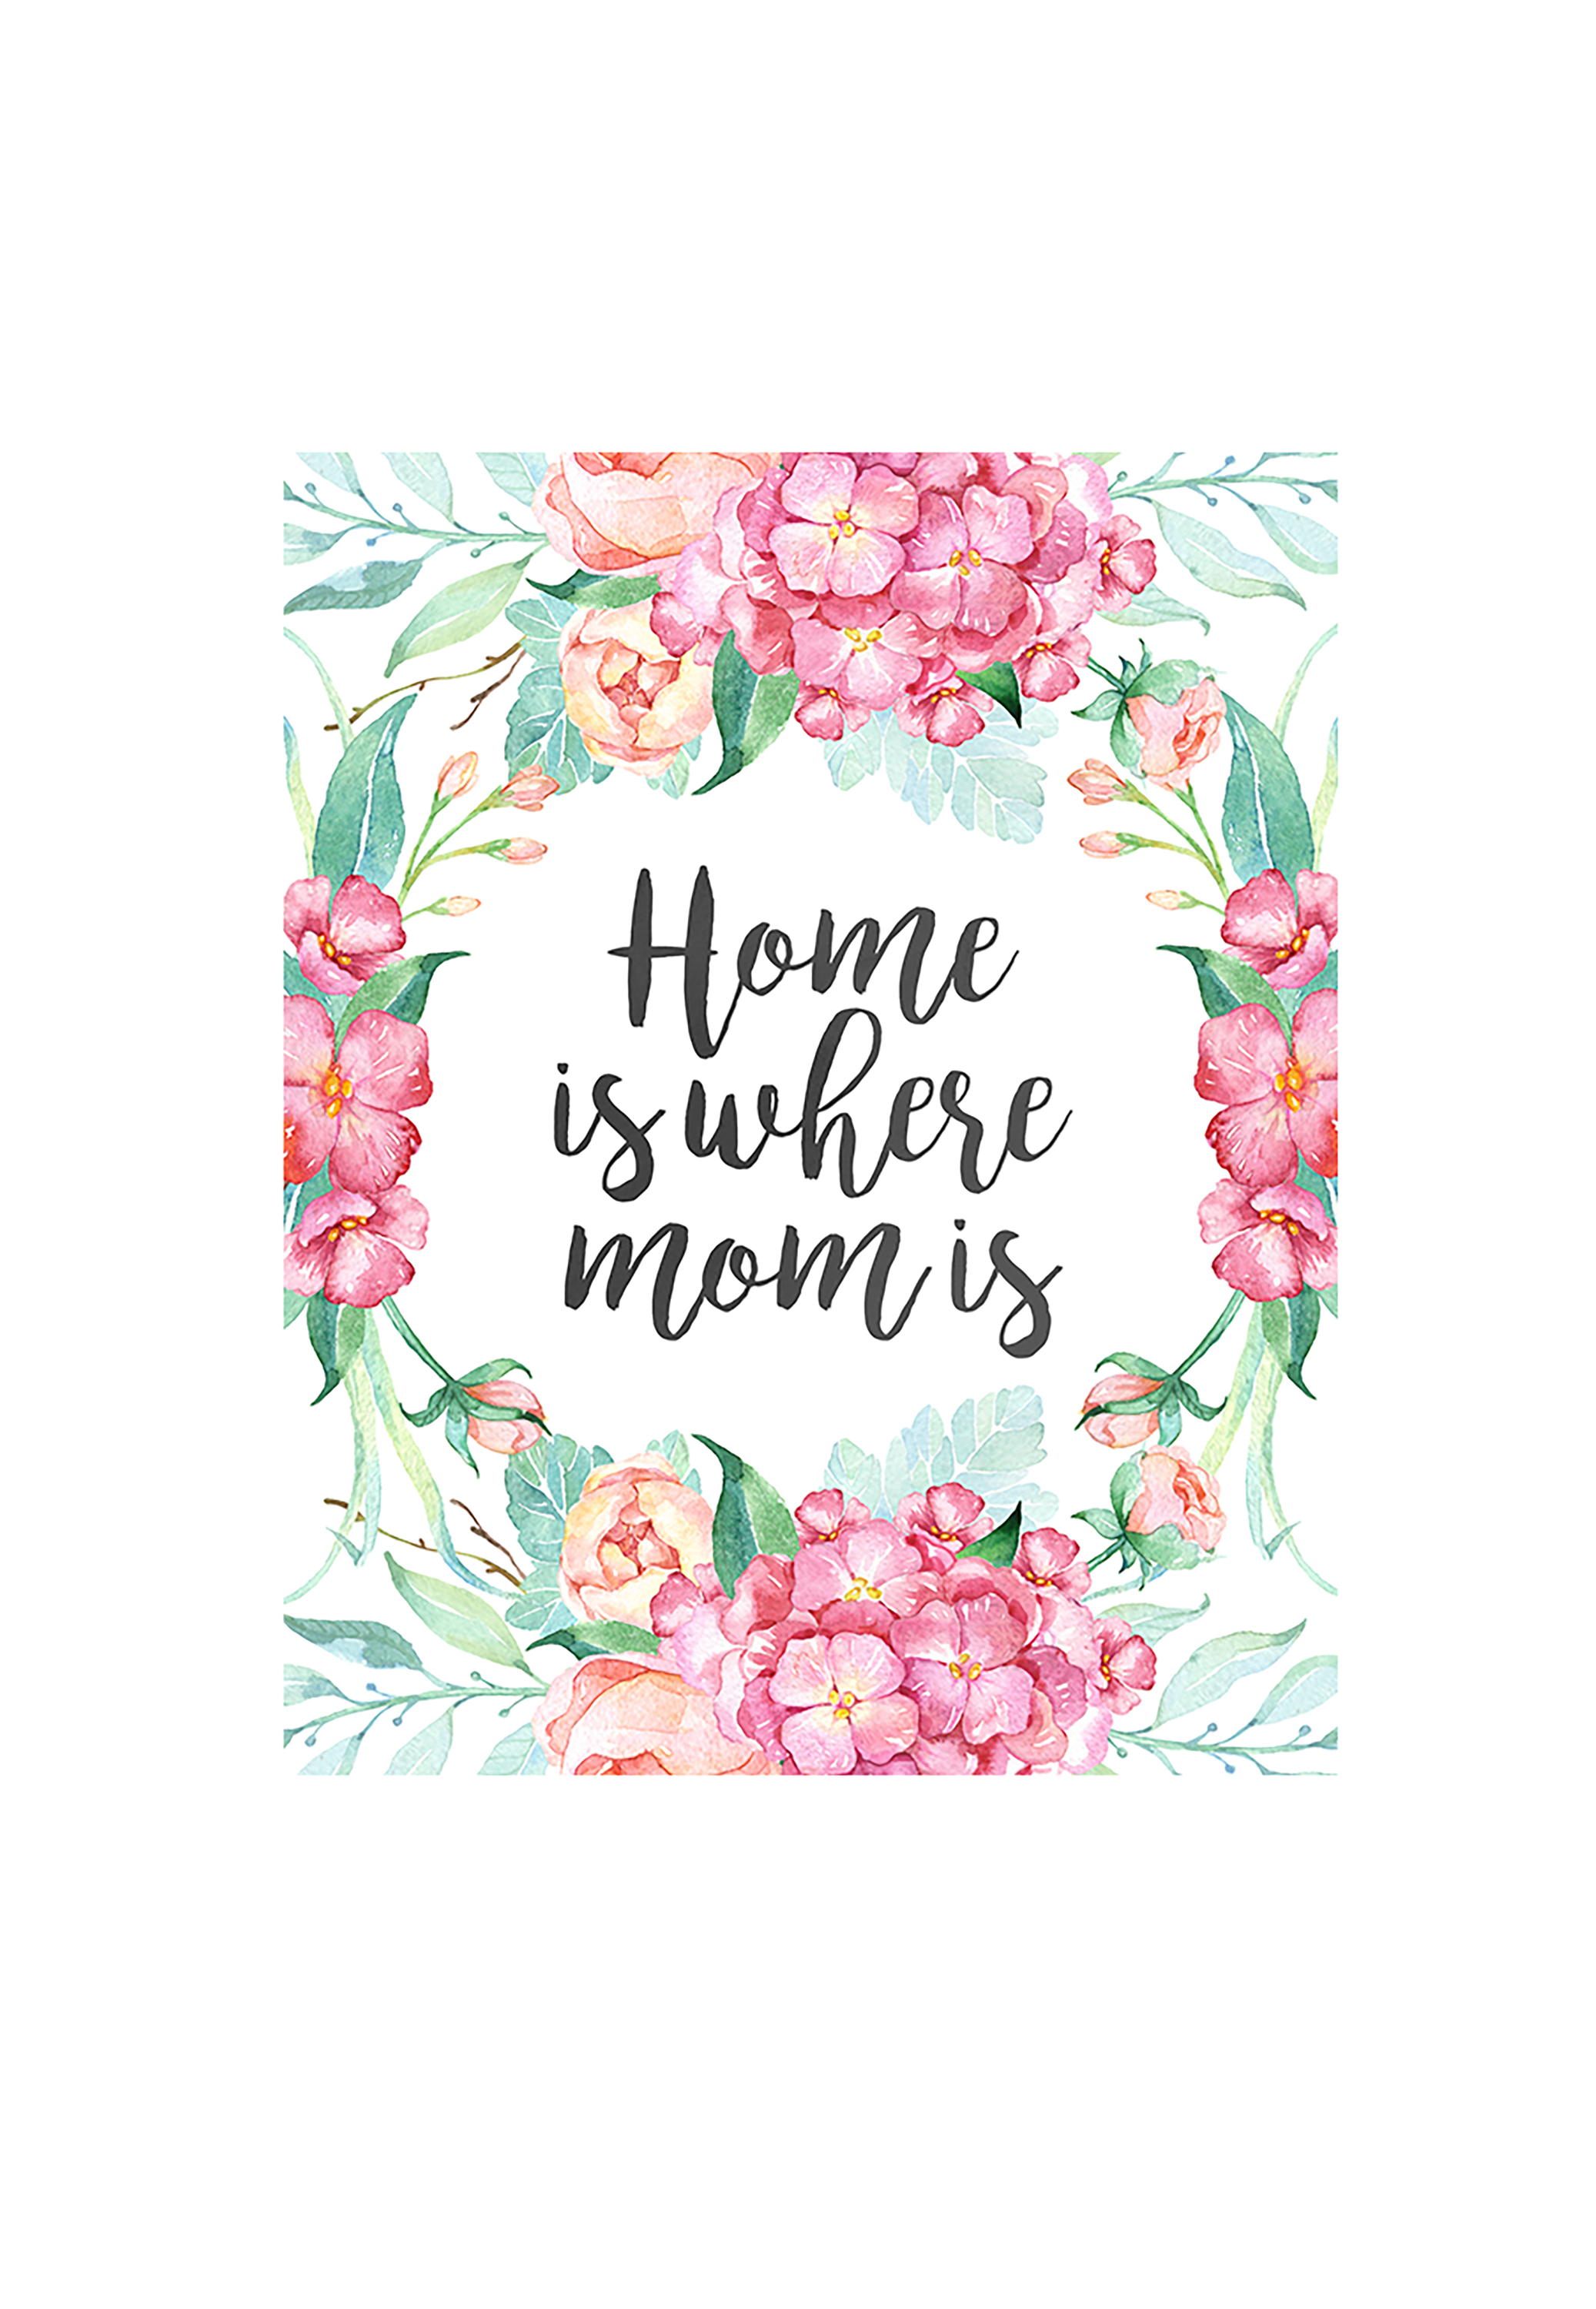 23 Mothers Day Cards - Free Printable Mother's Day Cards - Free Printable Mothers Day Cards From The Dog